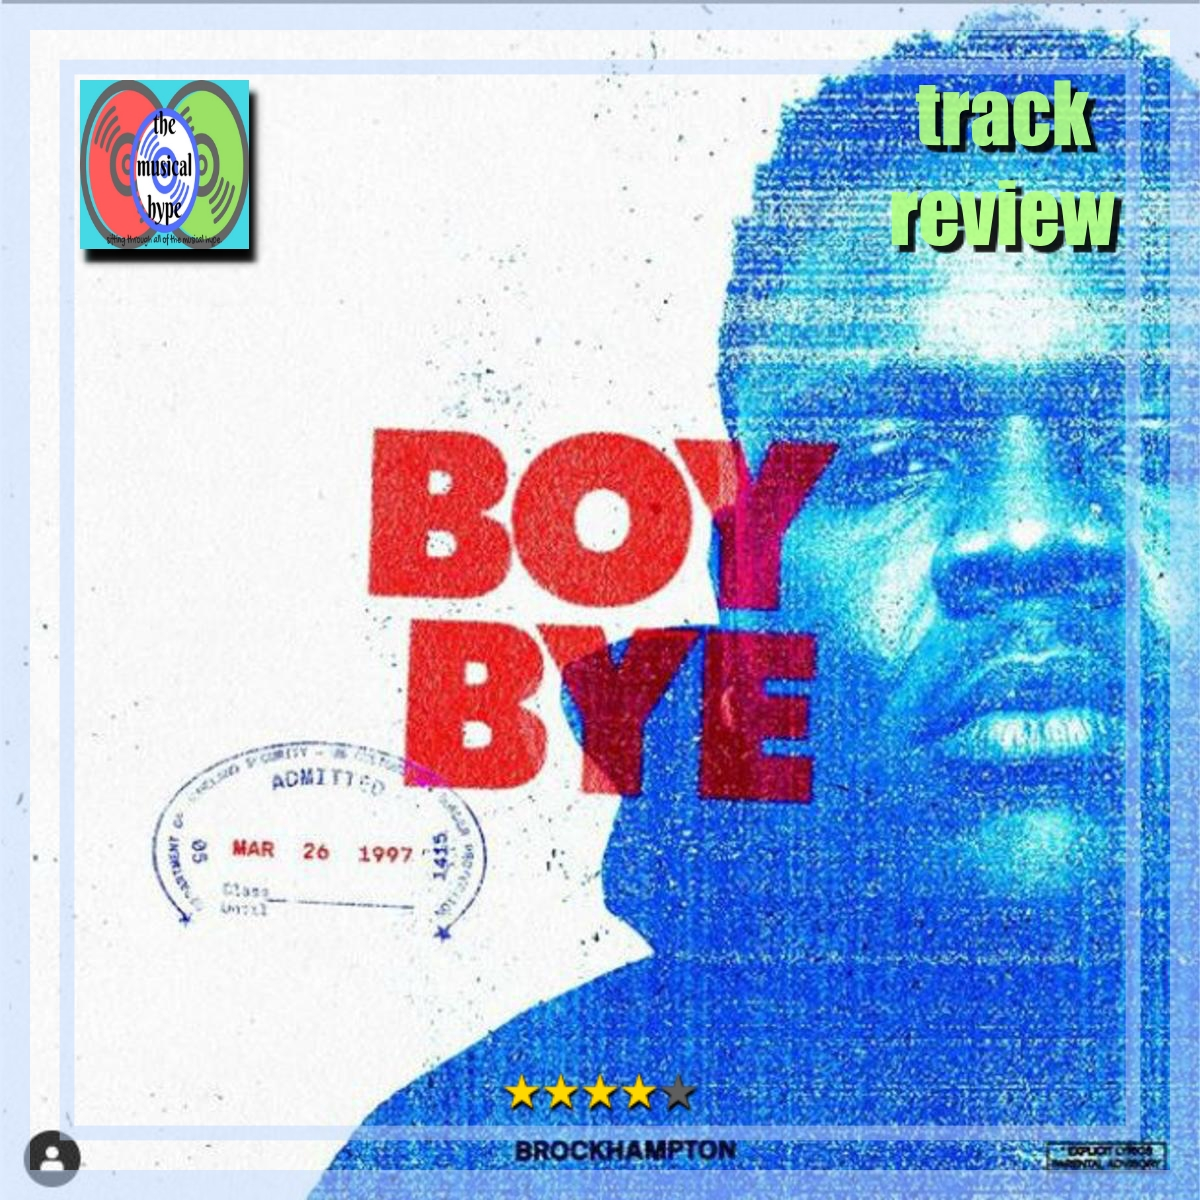 BROCKHAMPTON, Boy Bye | Track Review